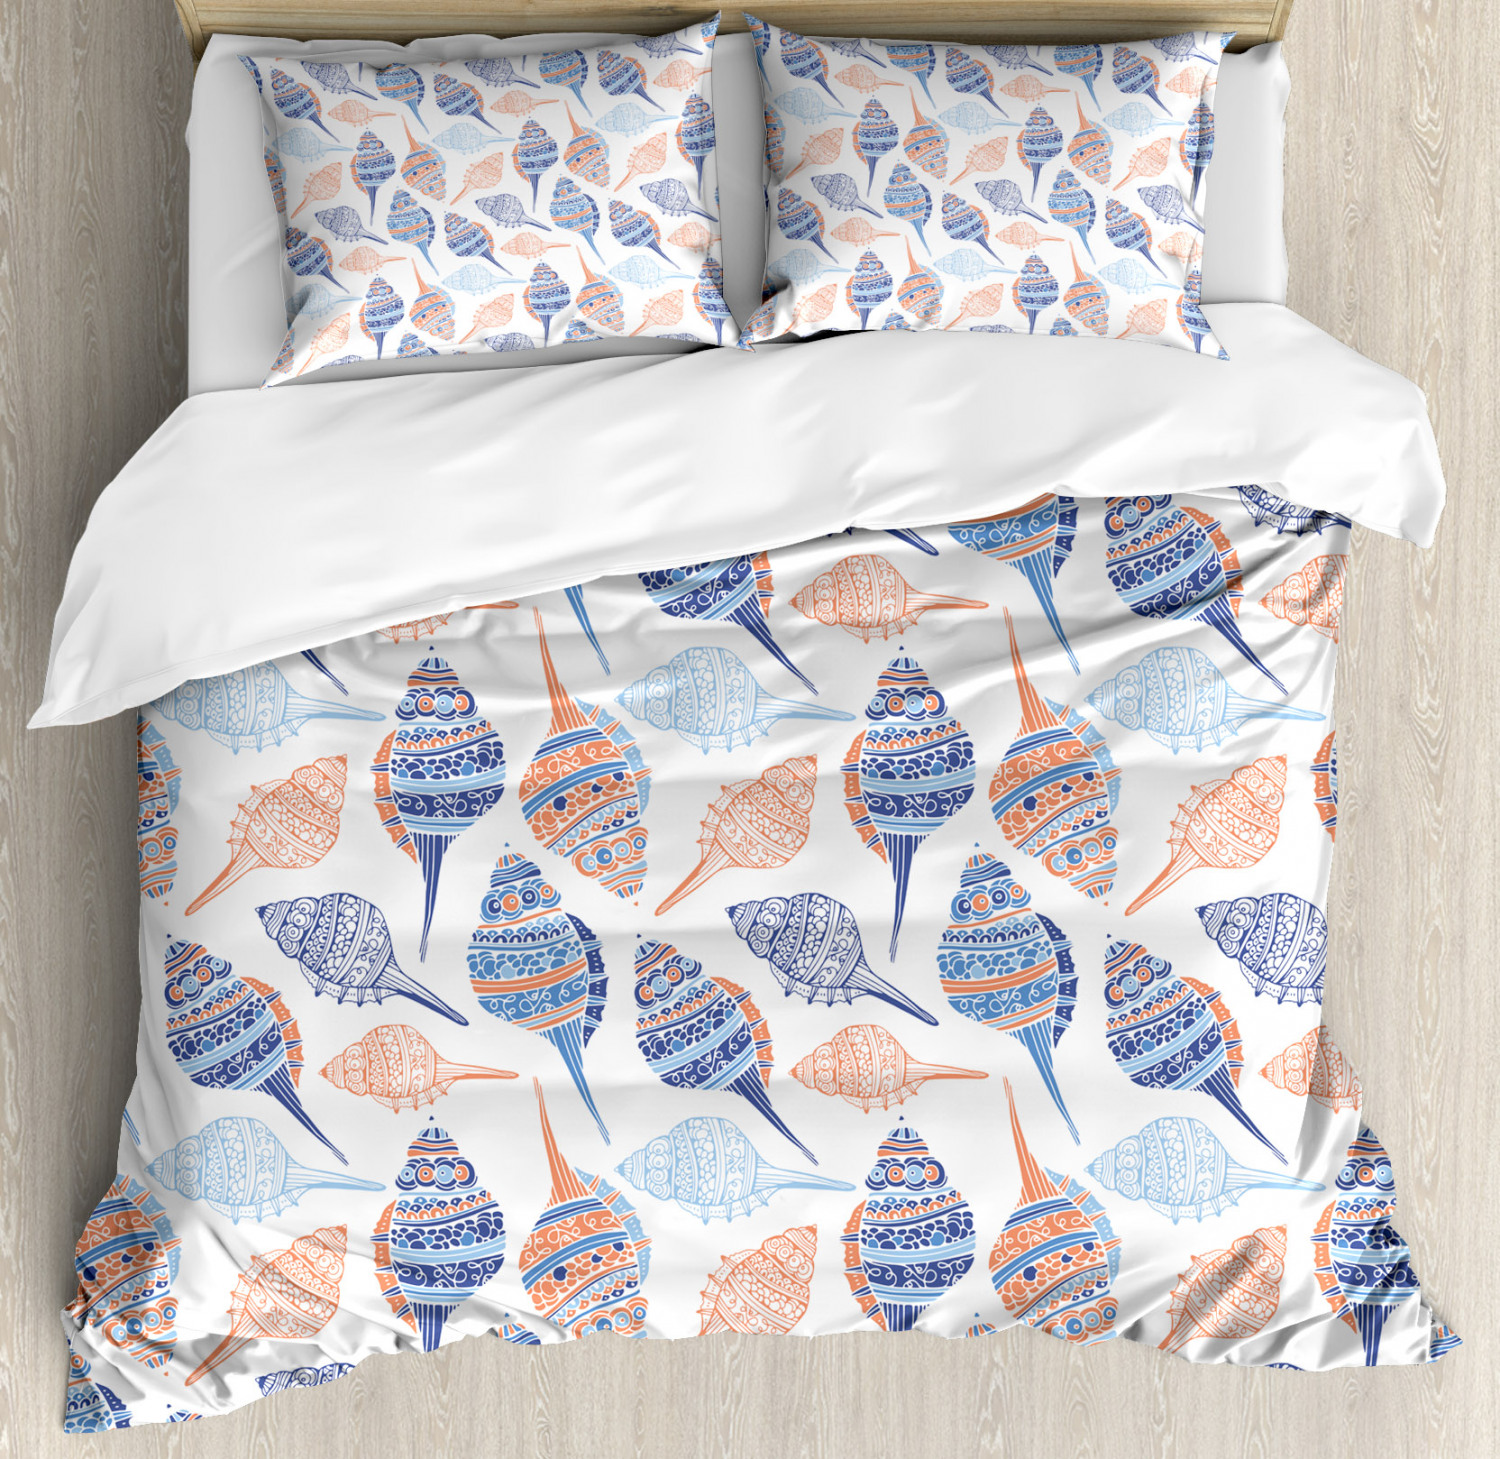 Ocean Duvet Cover Set with Pillow Shams Abstract Marine Seashells Print